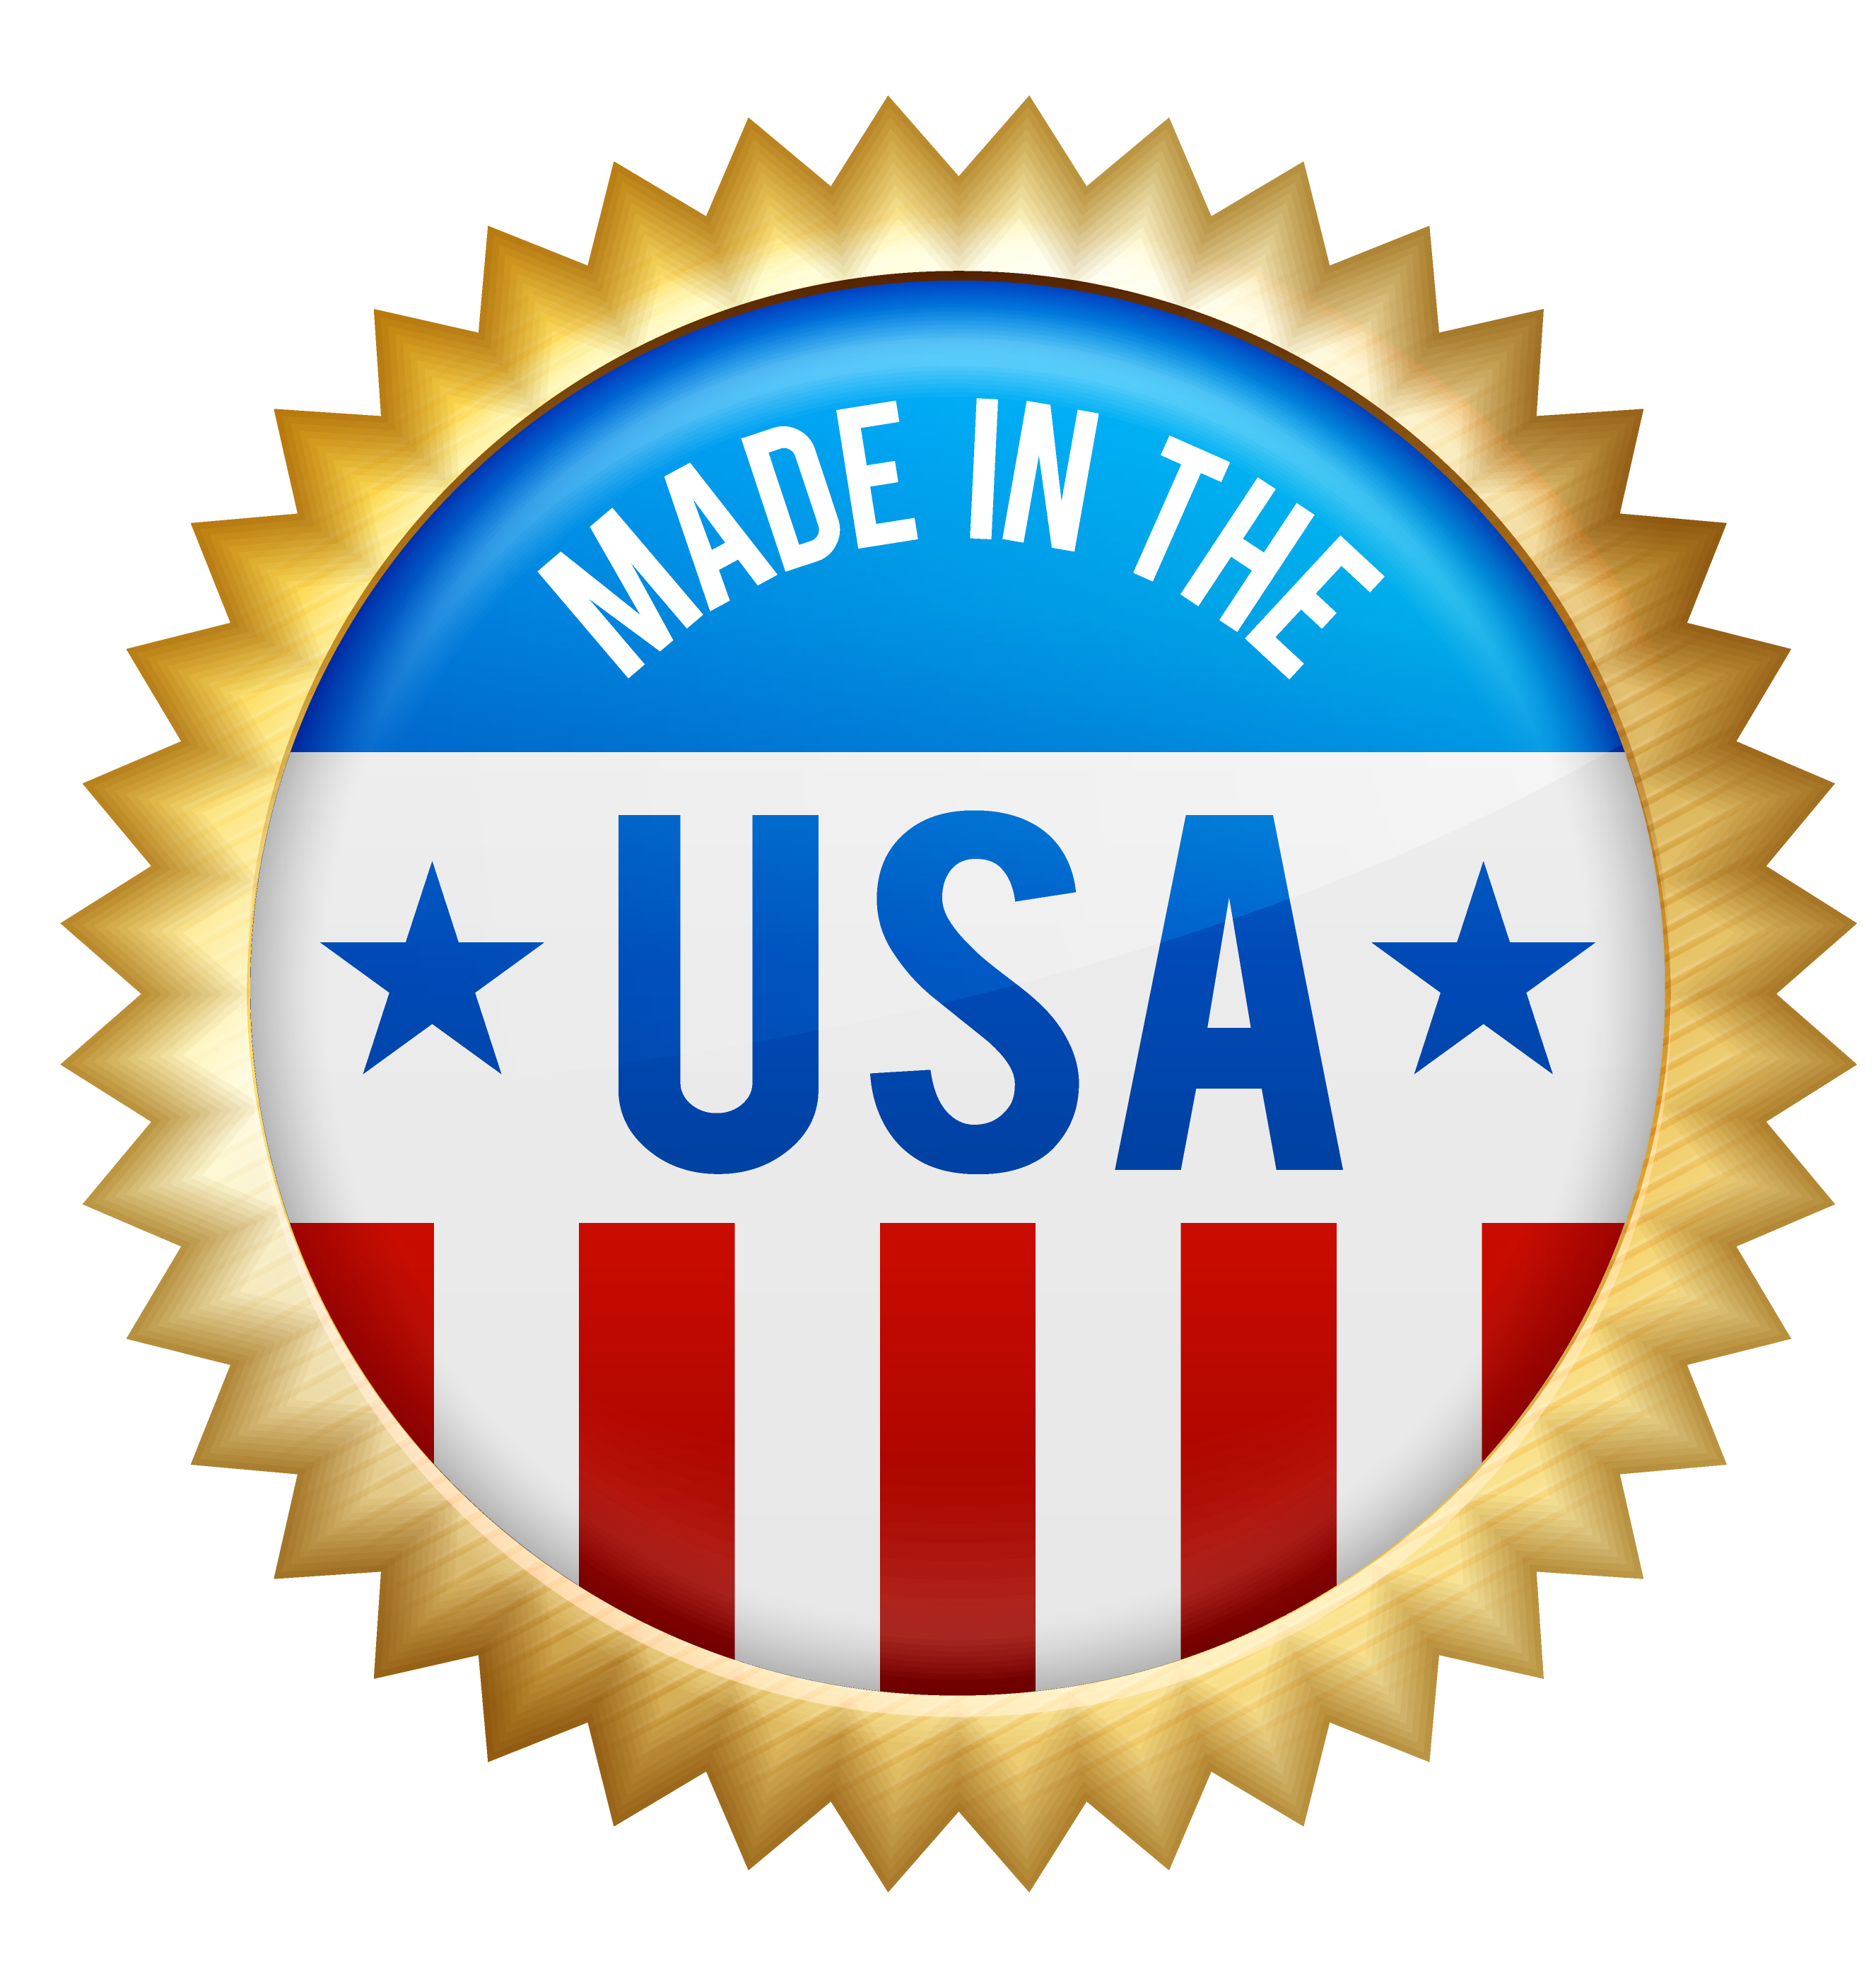 PRO Homogenizers are made in the USA